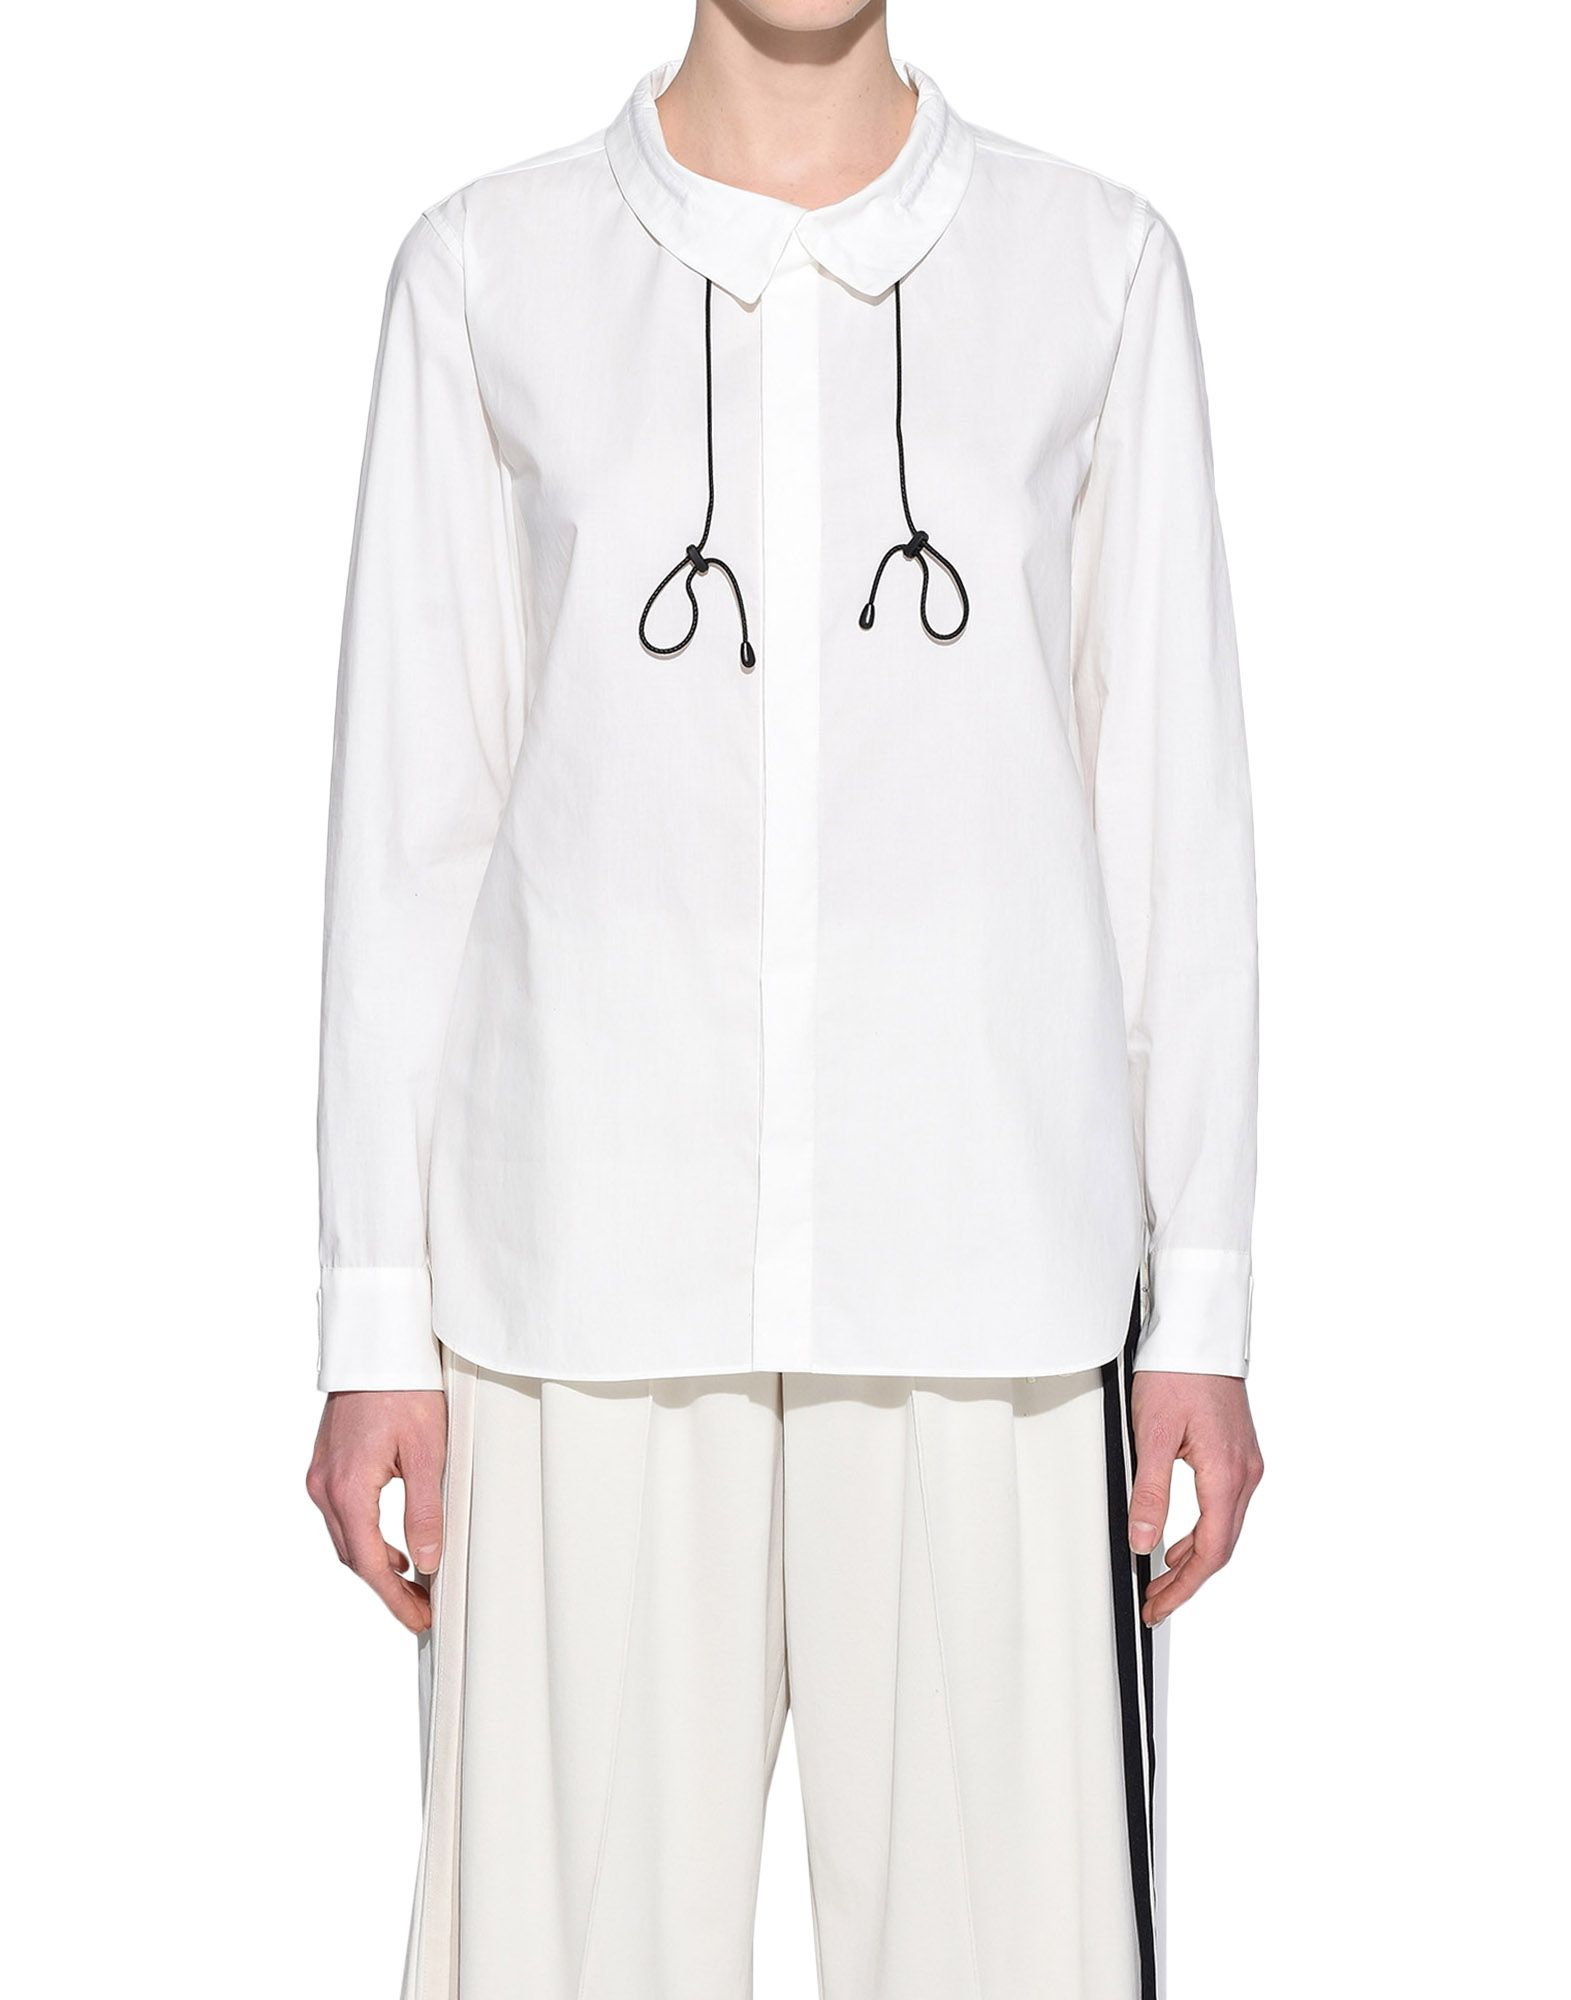 Y-3 Y-3 Tie-Cord Shirt Long sleeve shirt Woman r